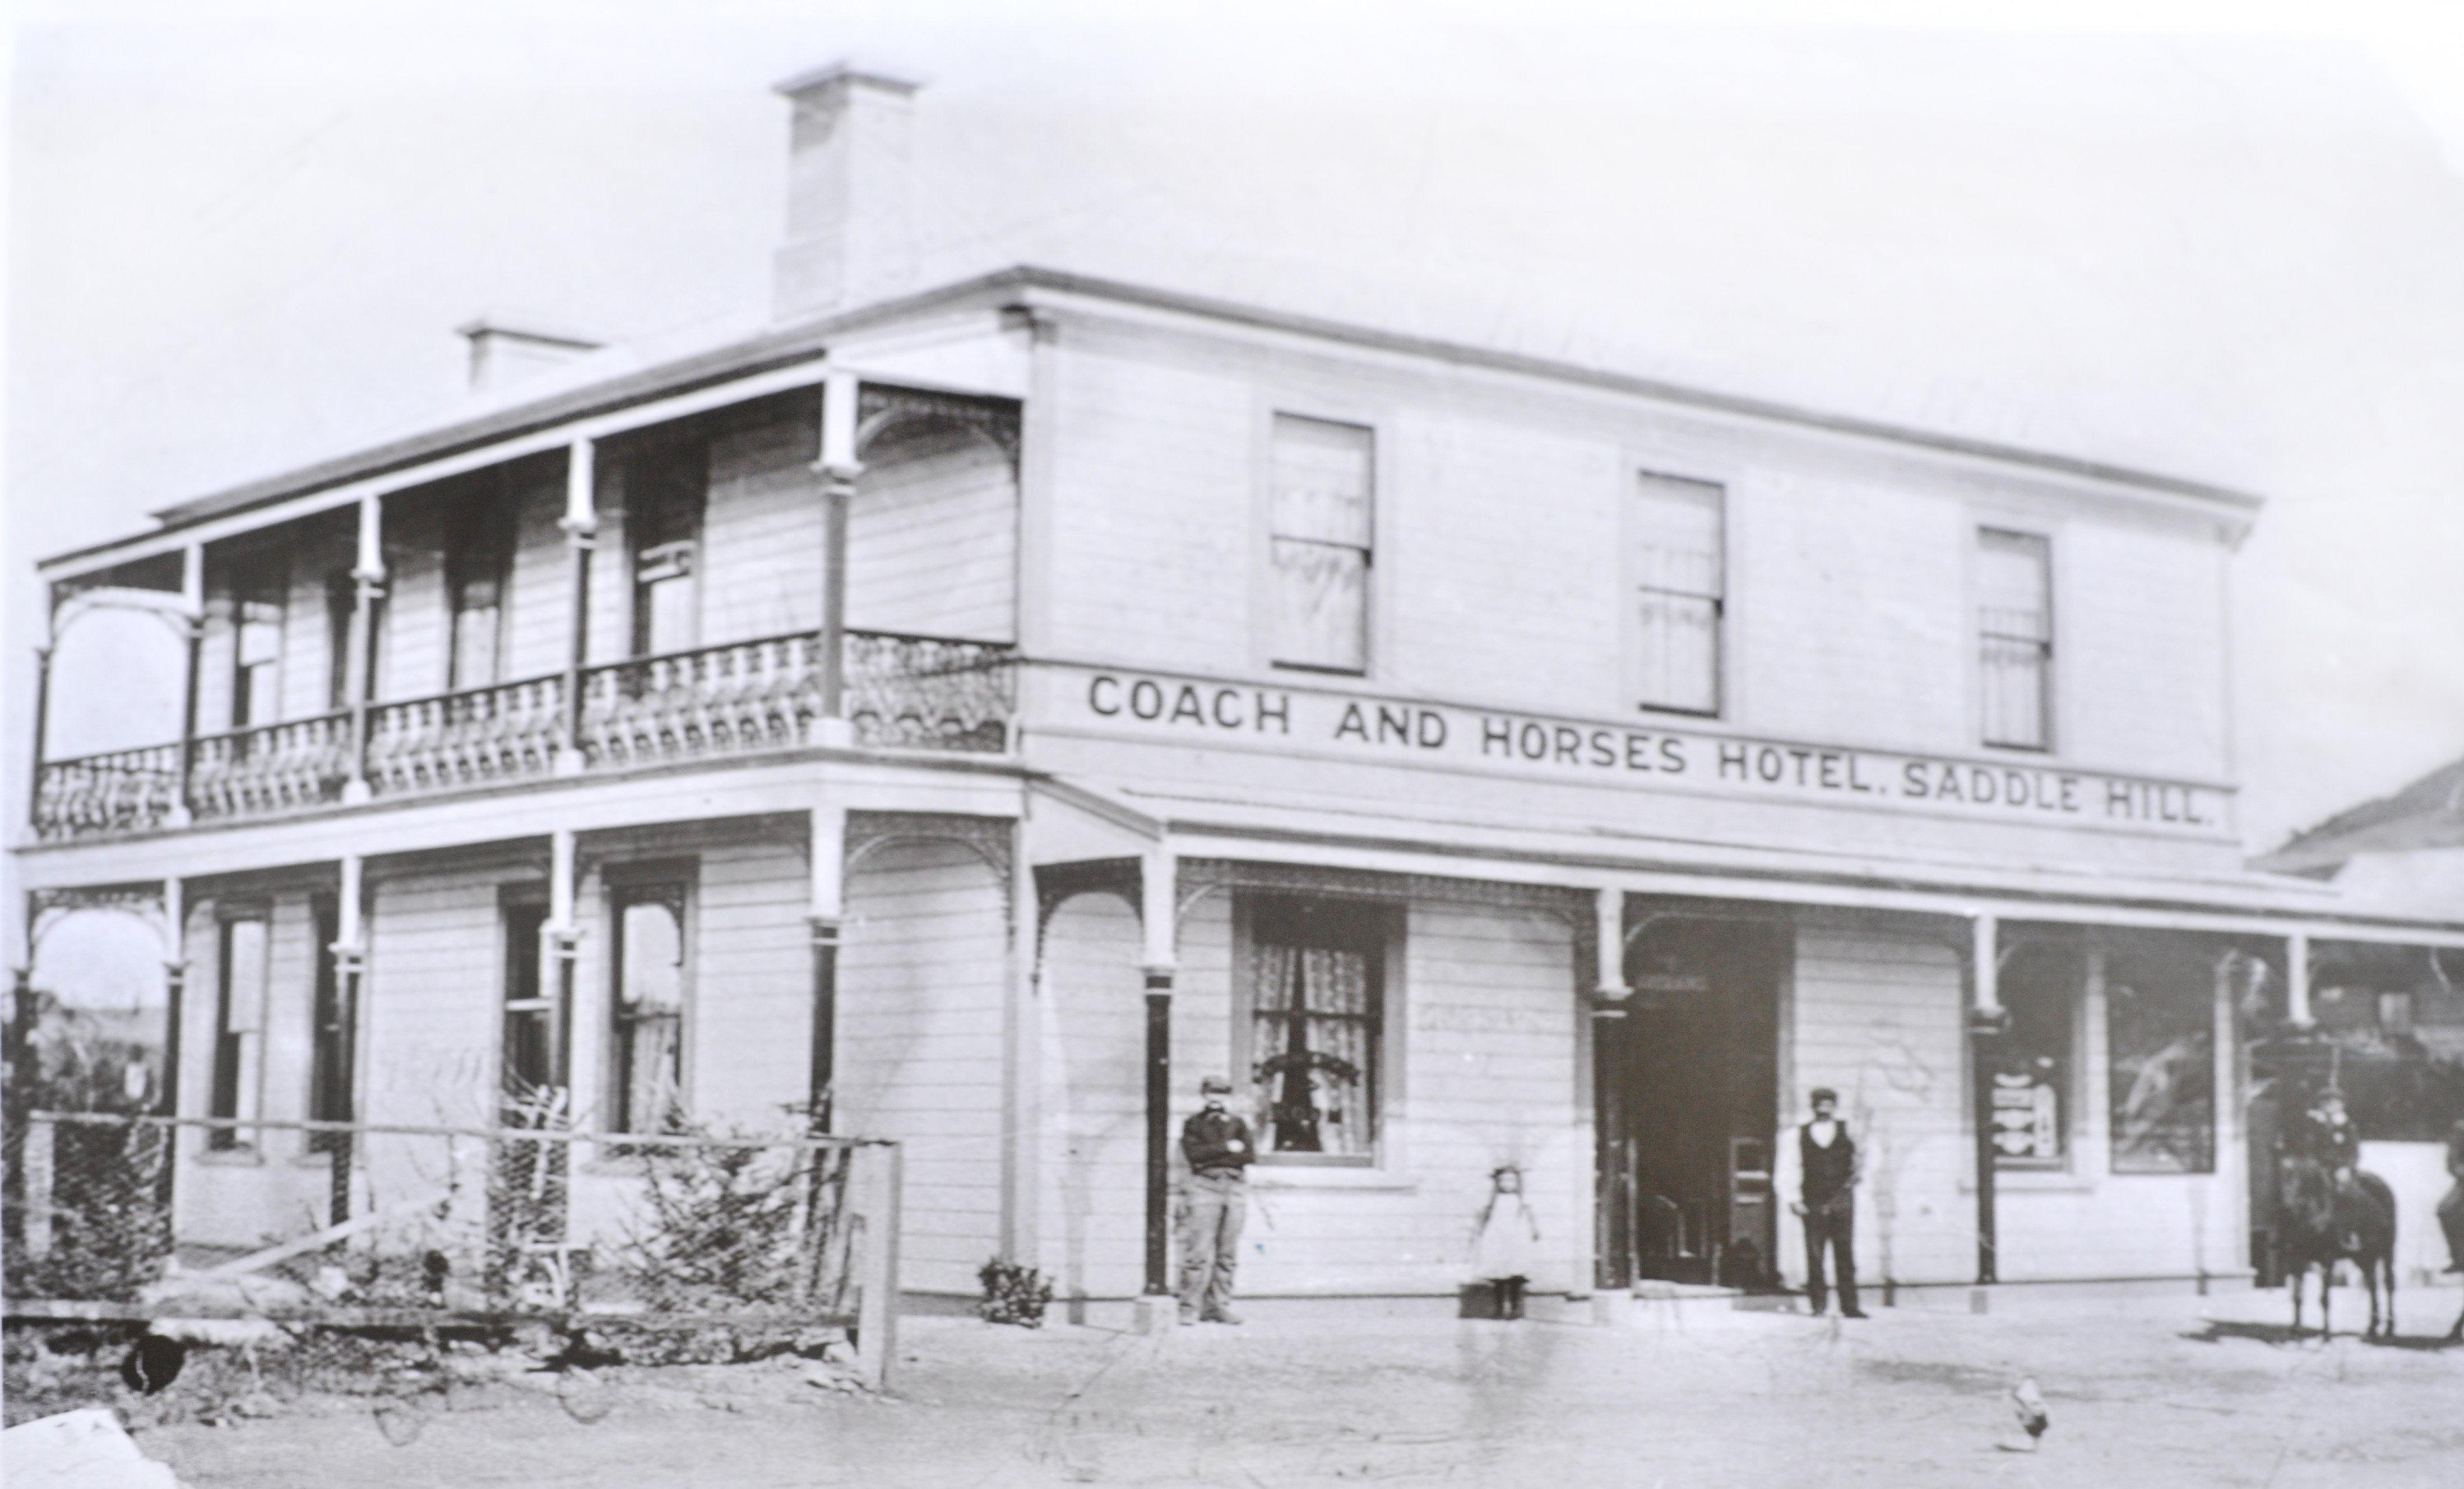 The Coach and Horses Hotel in 1904.